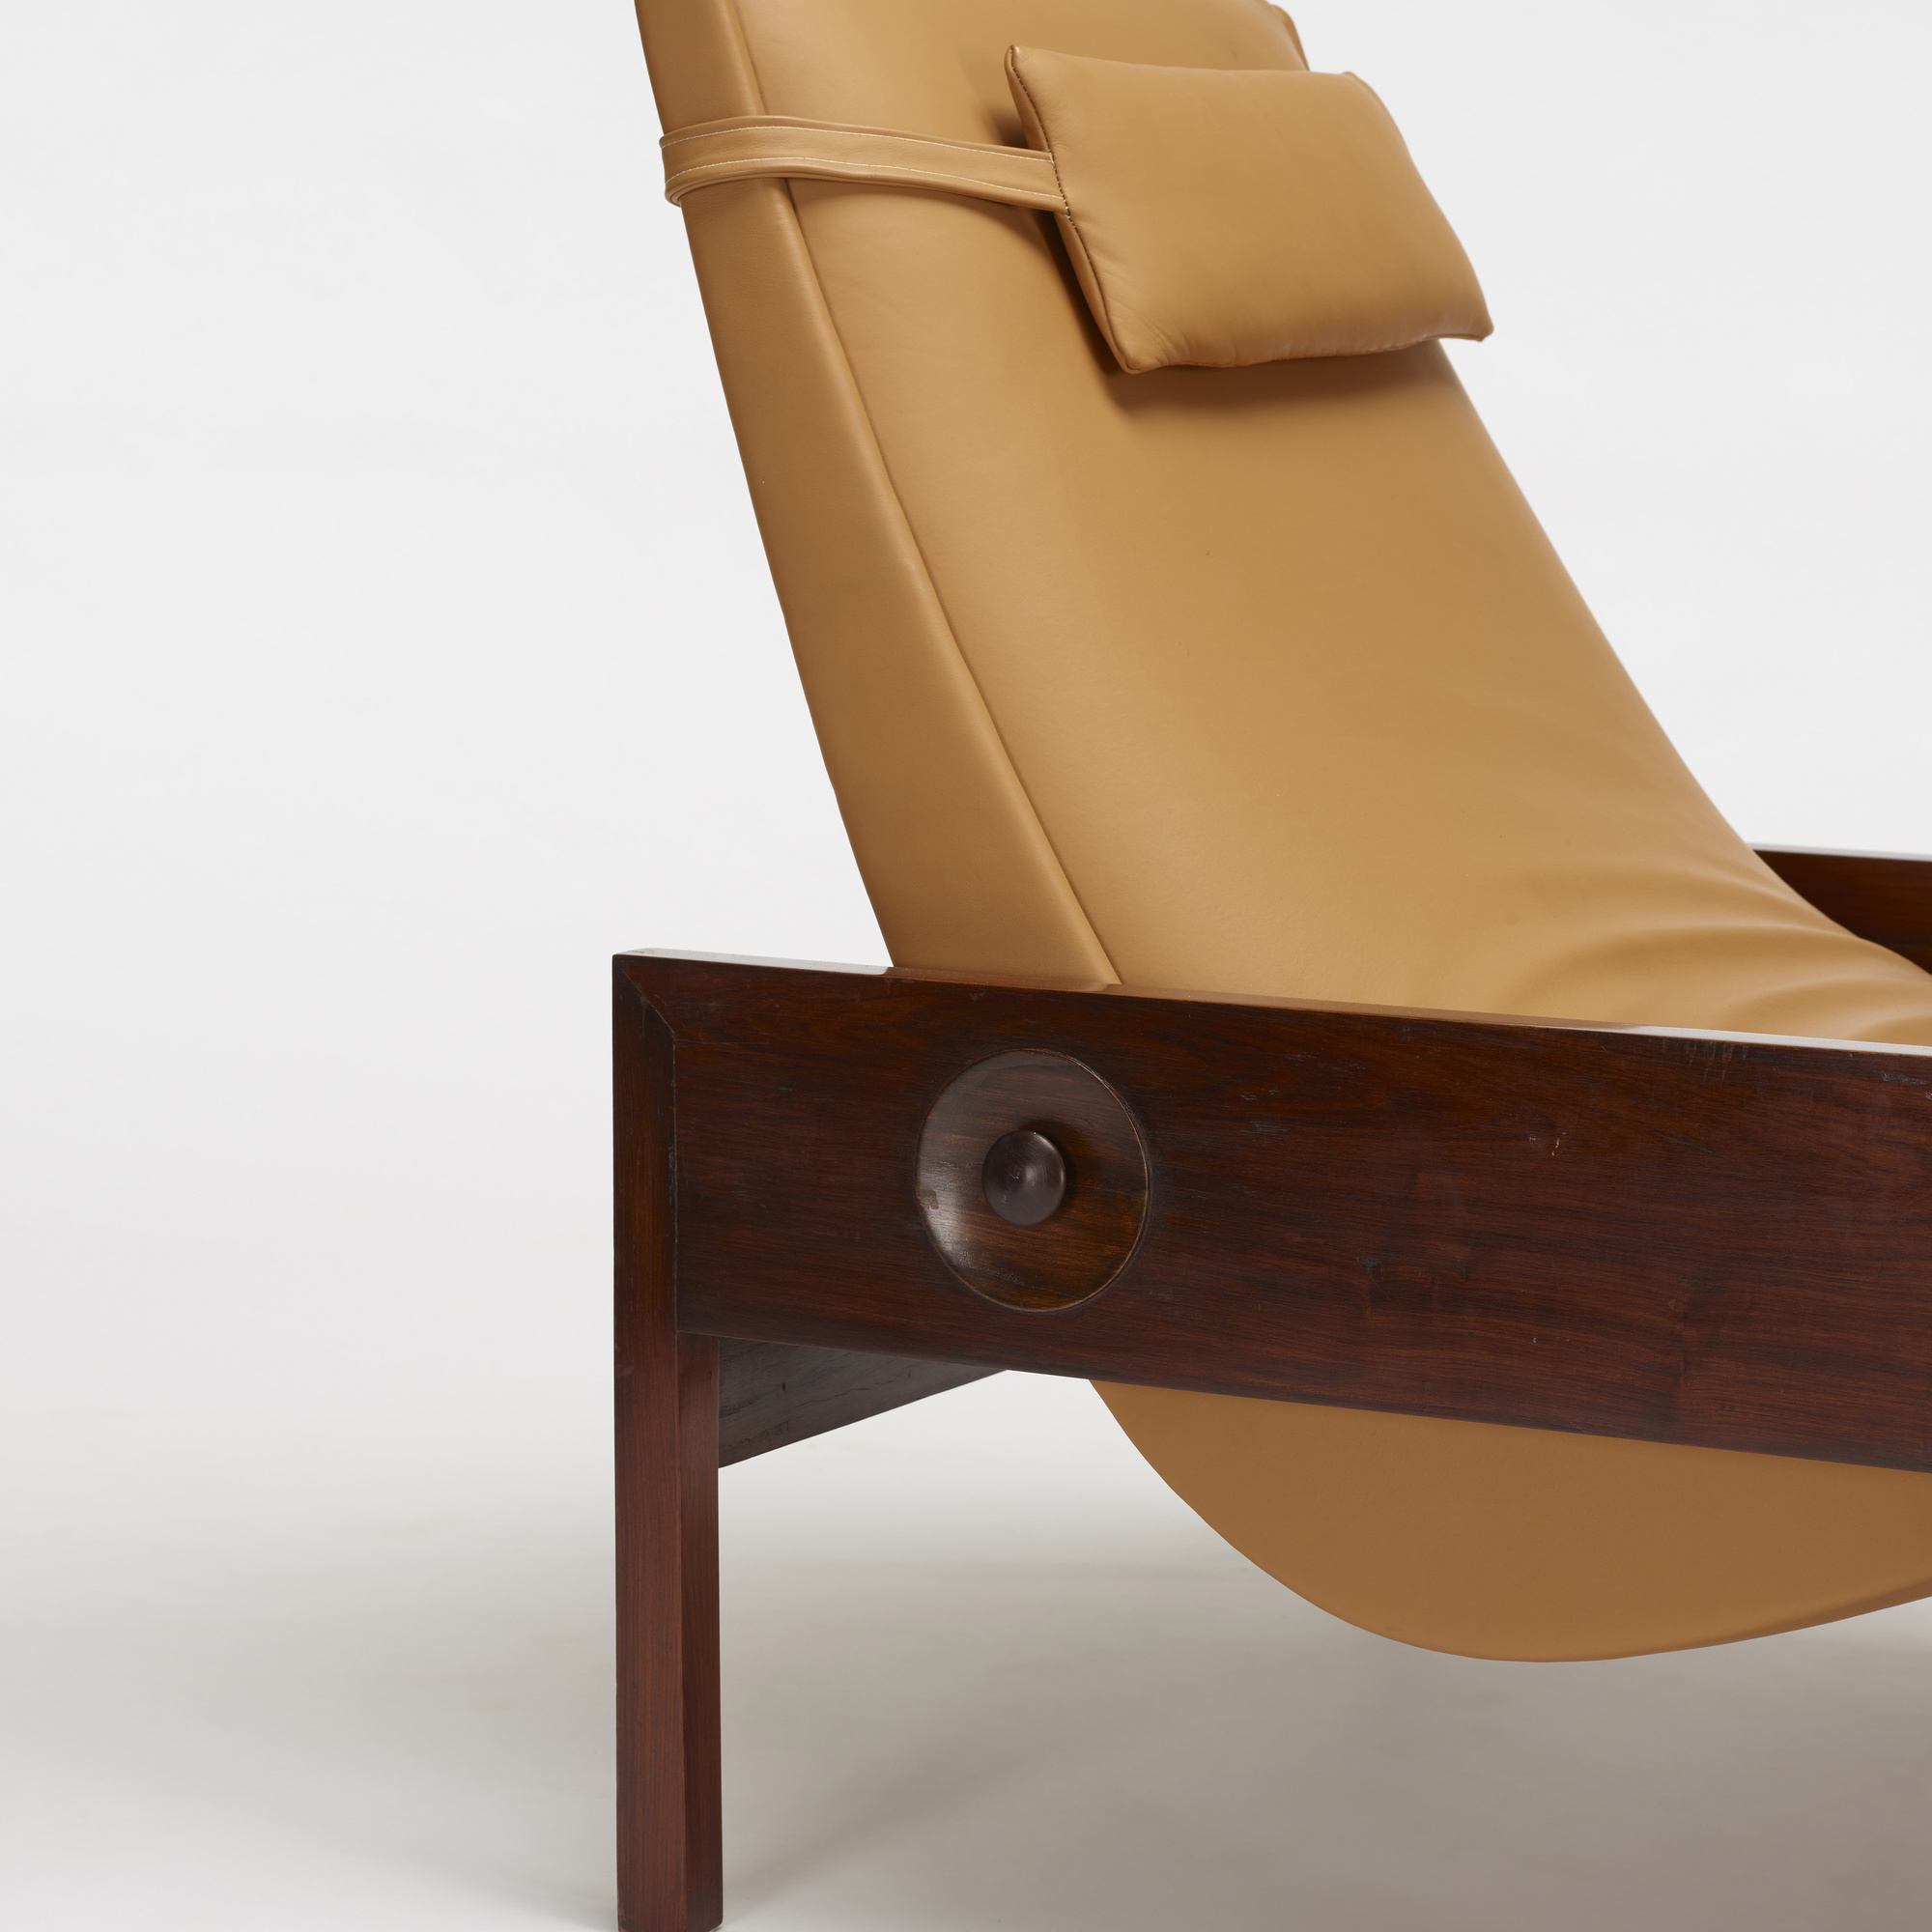 215: Brazilian / lounge chairs, pair (3 of 3)